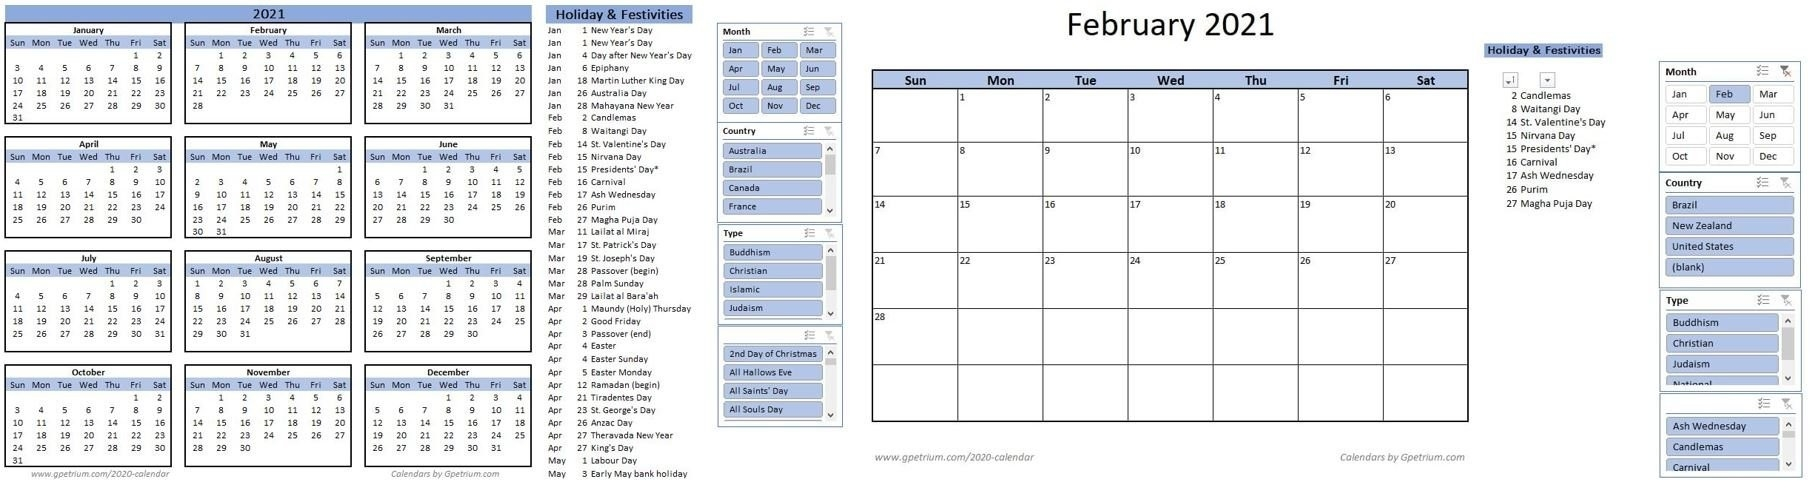 Free 2021 Calendar Template In Excel – Gpetrium-Holiday Spreadsheet 2021